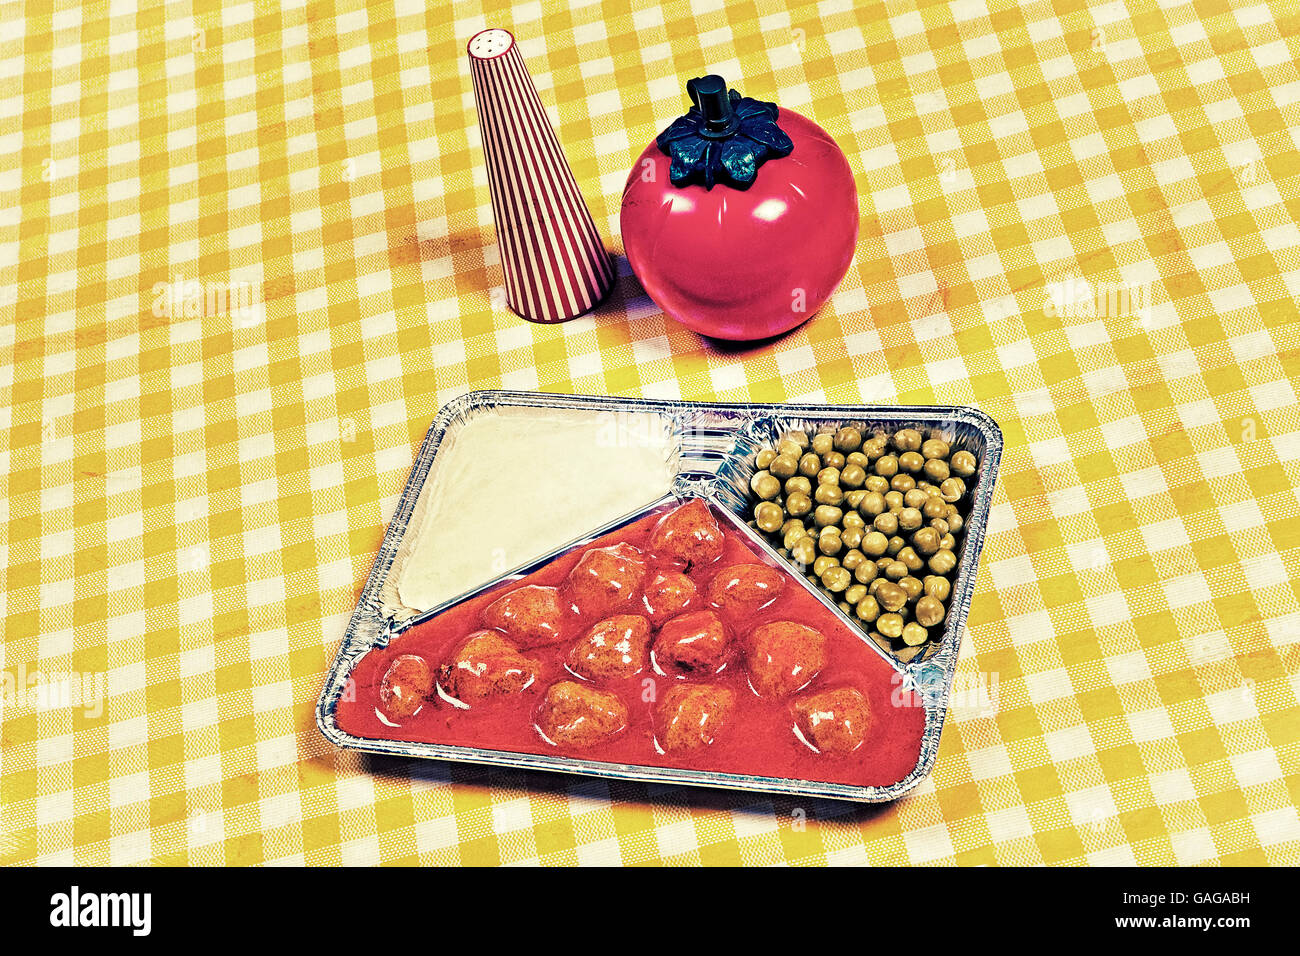 TV dinner tray vintage retro meal aluminum dish on tablecloth with tomato sauce - Stock Image